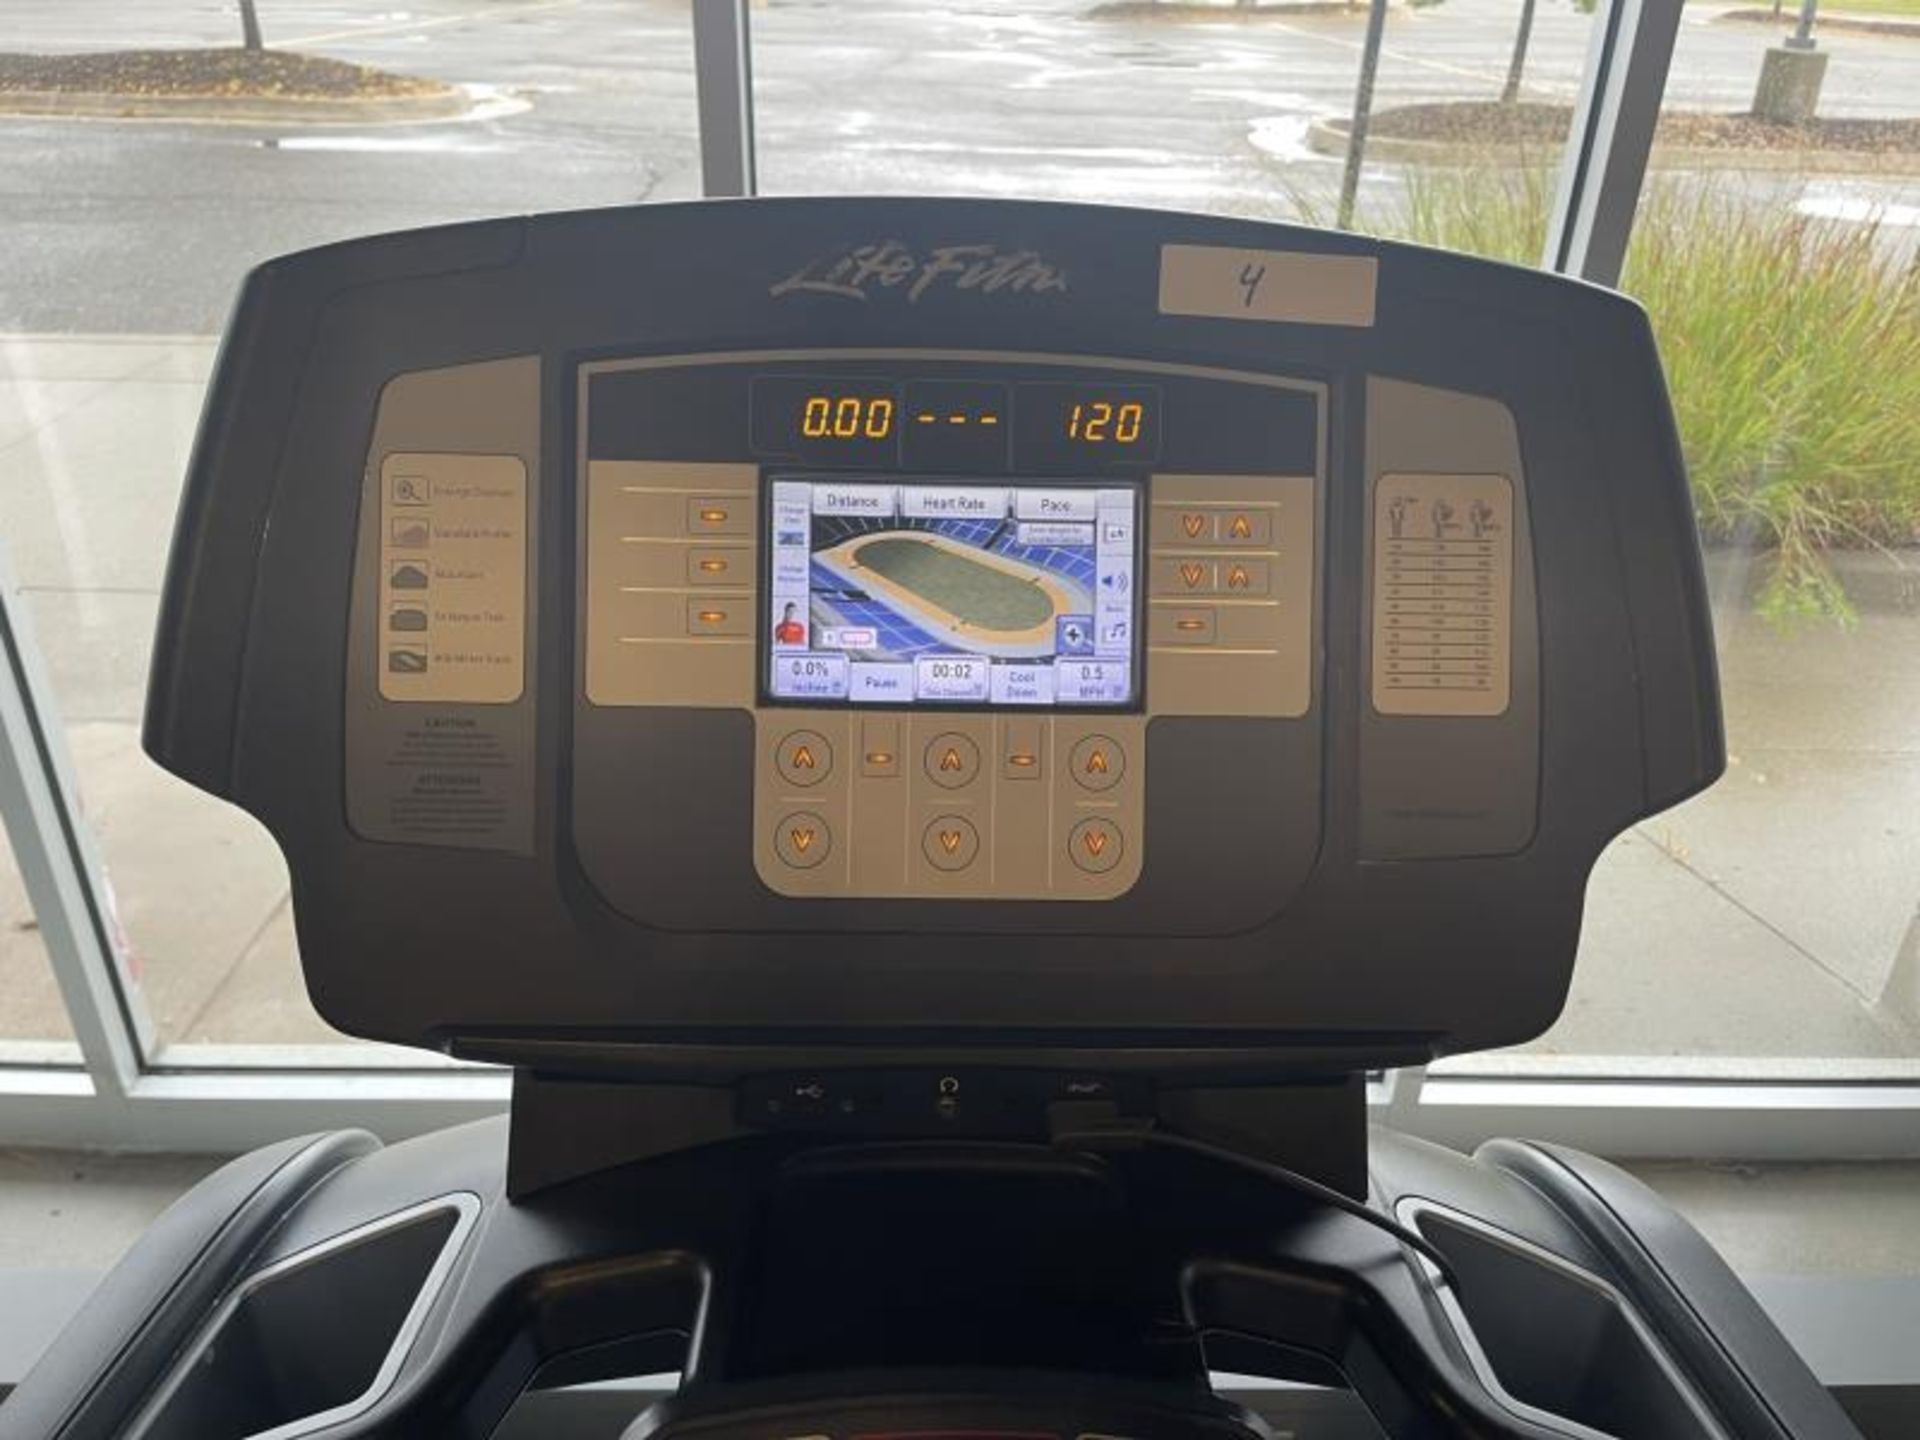 Life Fitness Treadmill M: 95T with Flex Deck, Shock Absorption System SN: TET108411 - Image 2 of 2